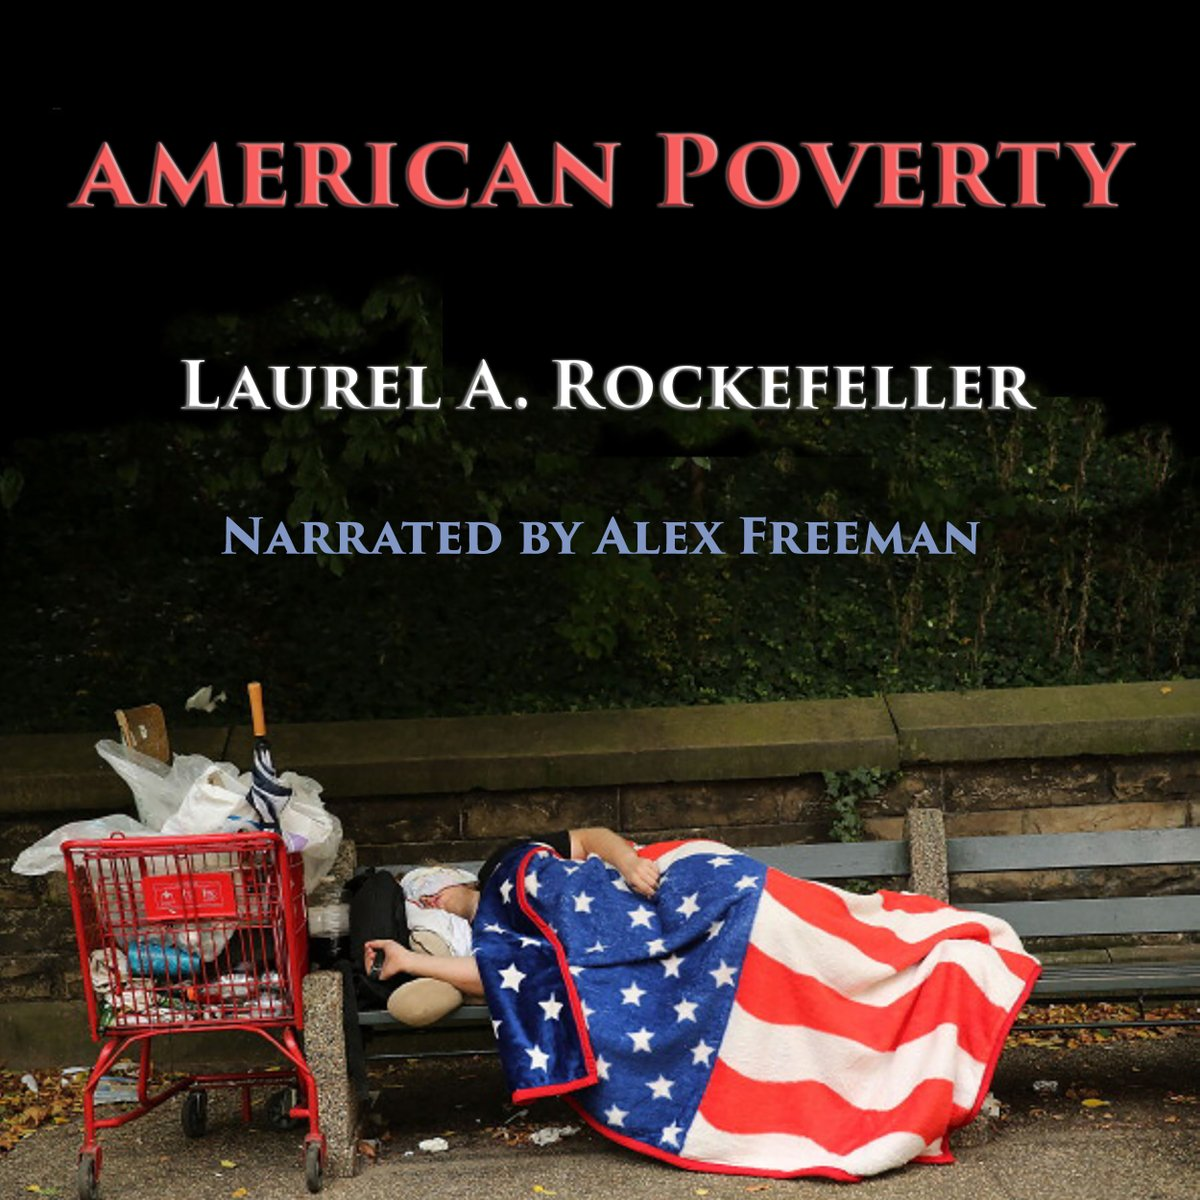 Now on Audible! https://www.audible.com/pd/American-Poverty-Audiobook/B083LCYSZZ… Beautifully narrated by Alex Freeman! #politicalscience pic.twitter.com/p54UKSUmt1